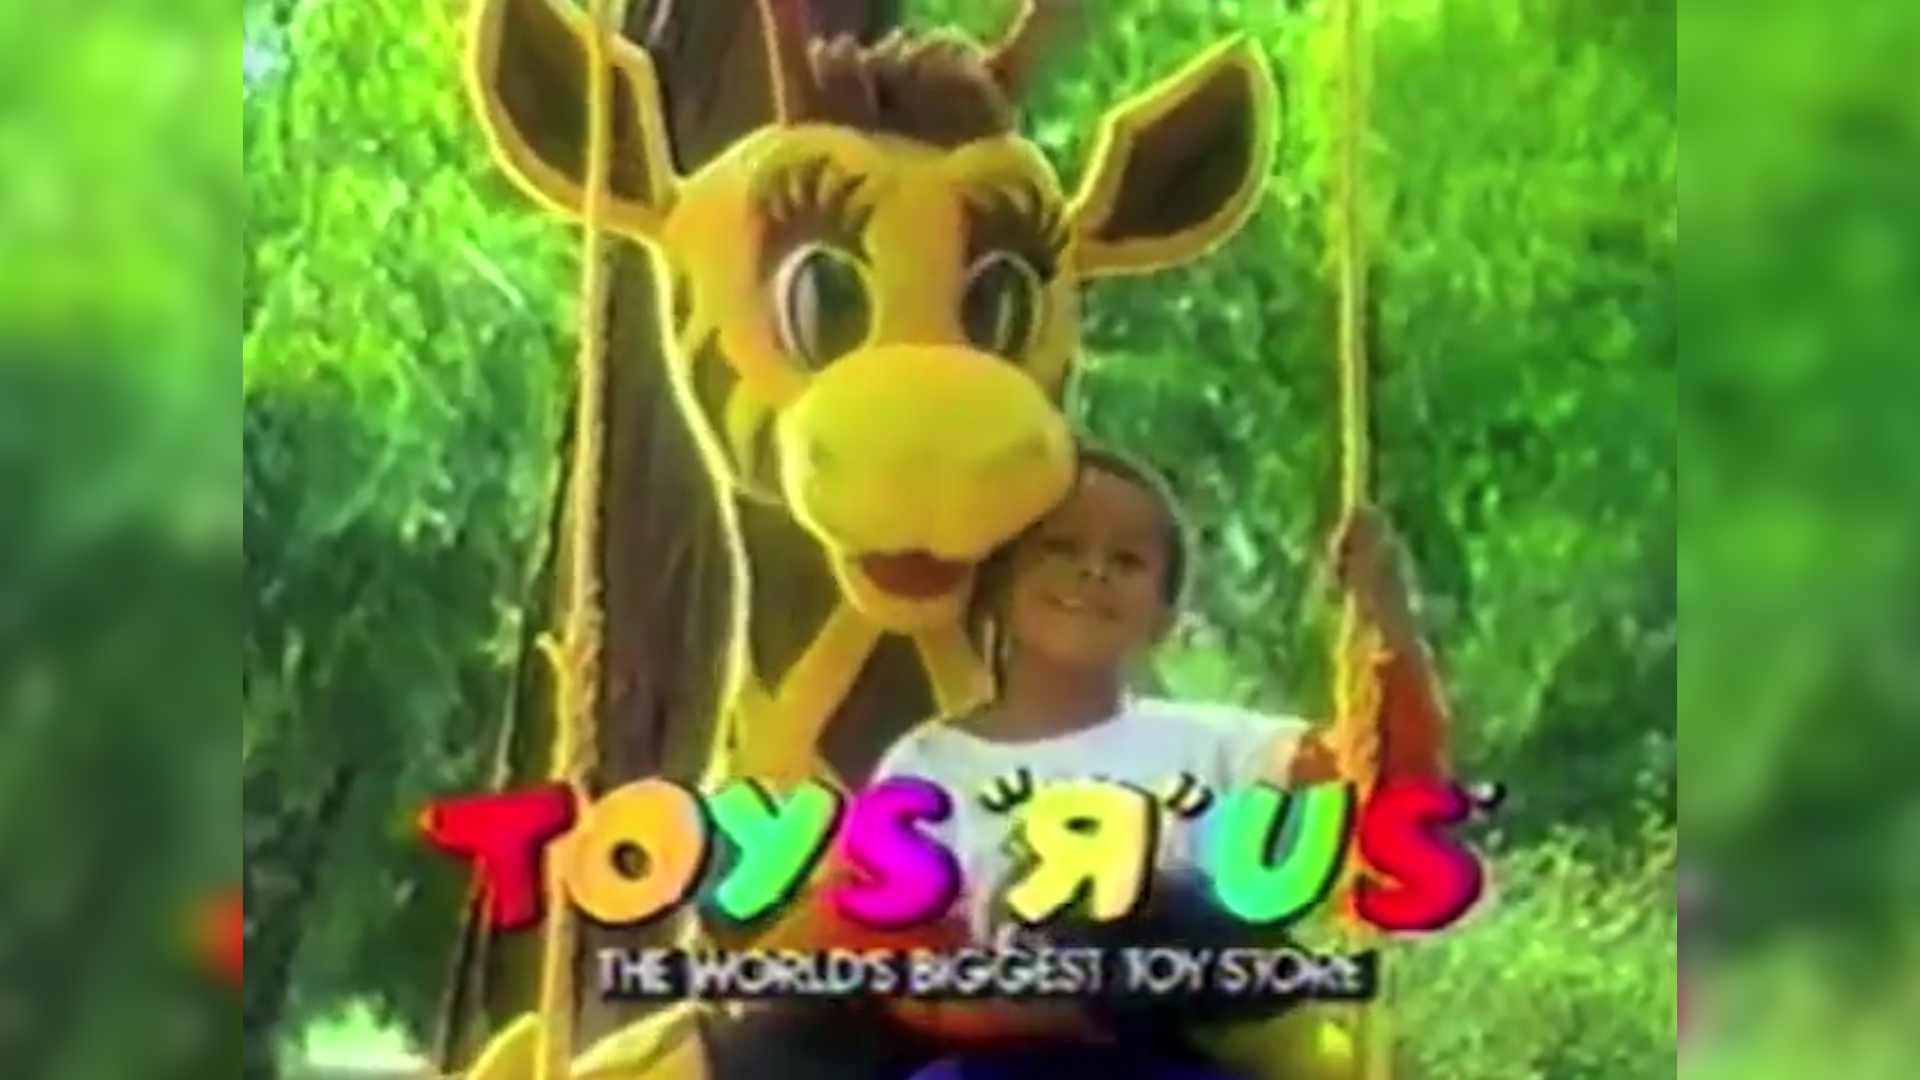 Toys R Us to close all 800 of its U.S. stores